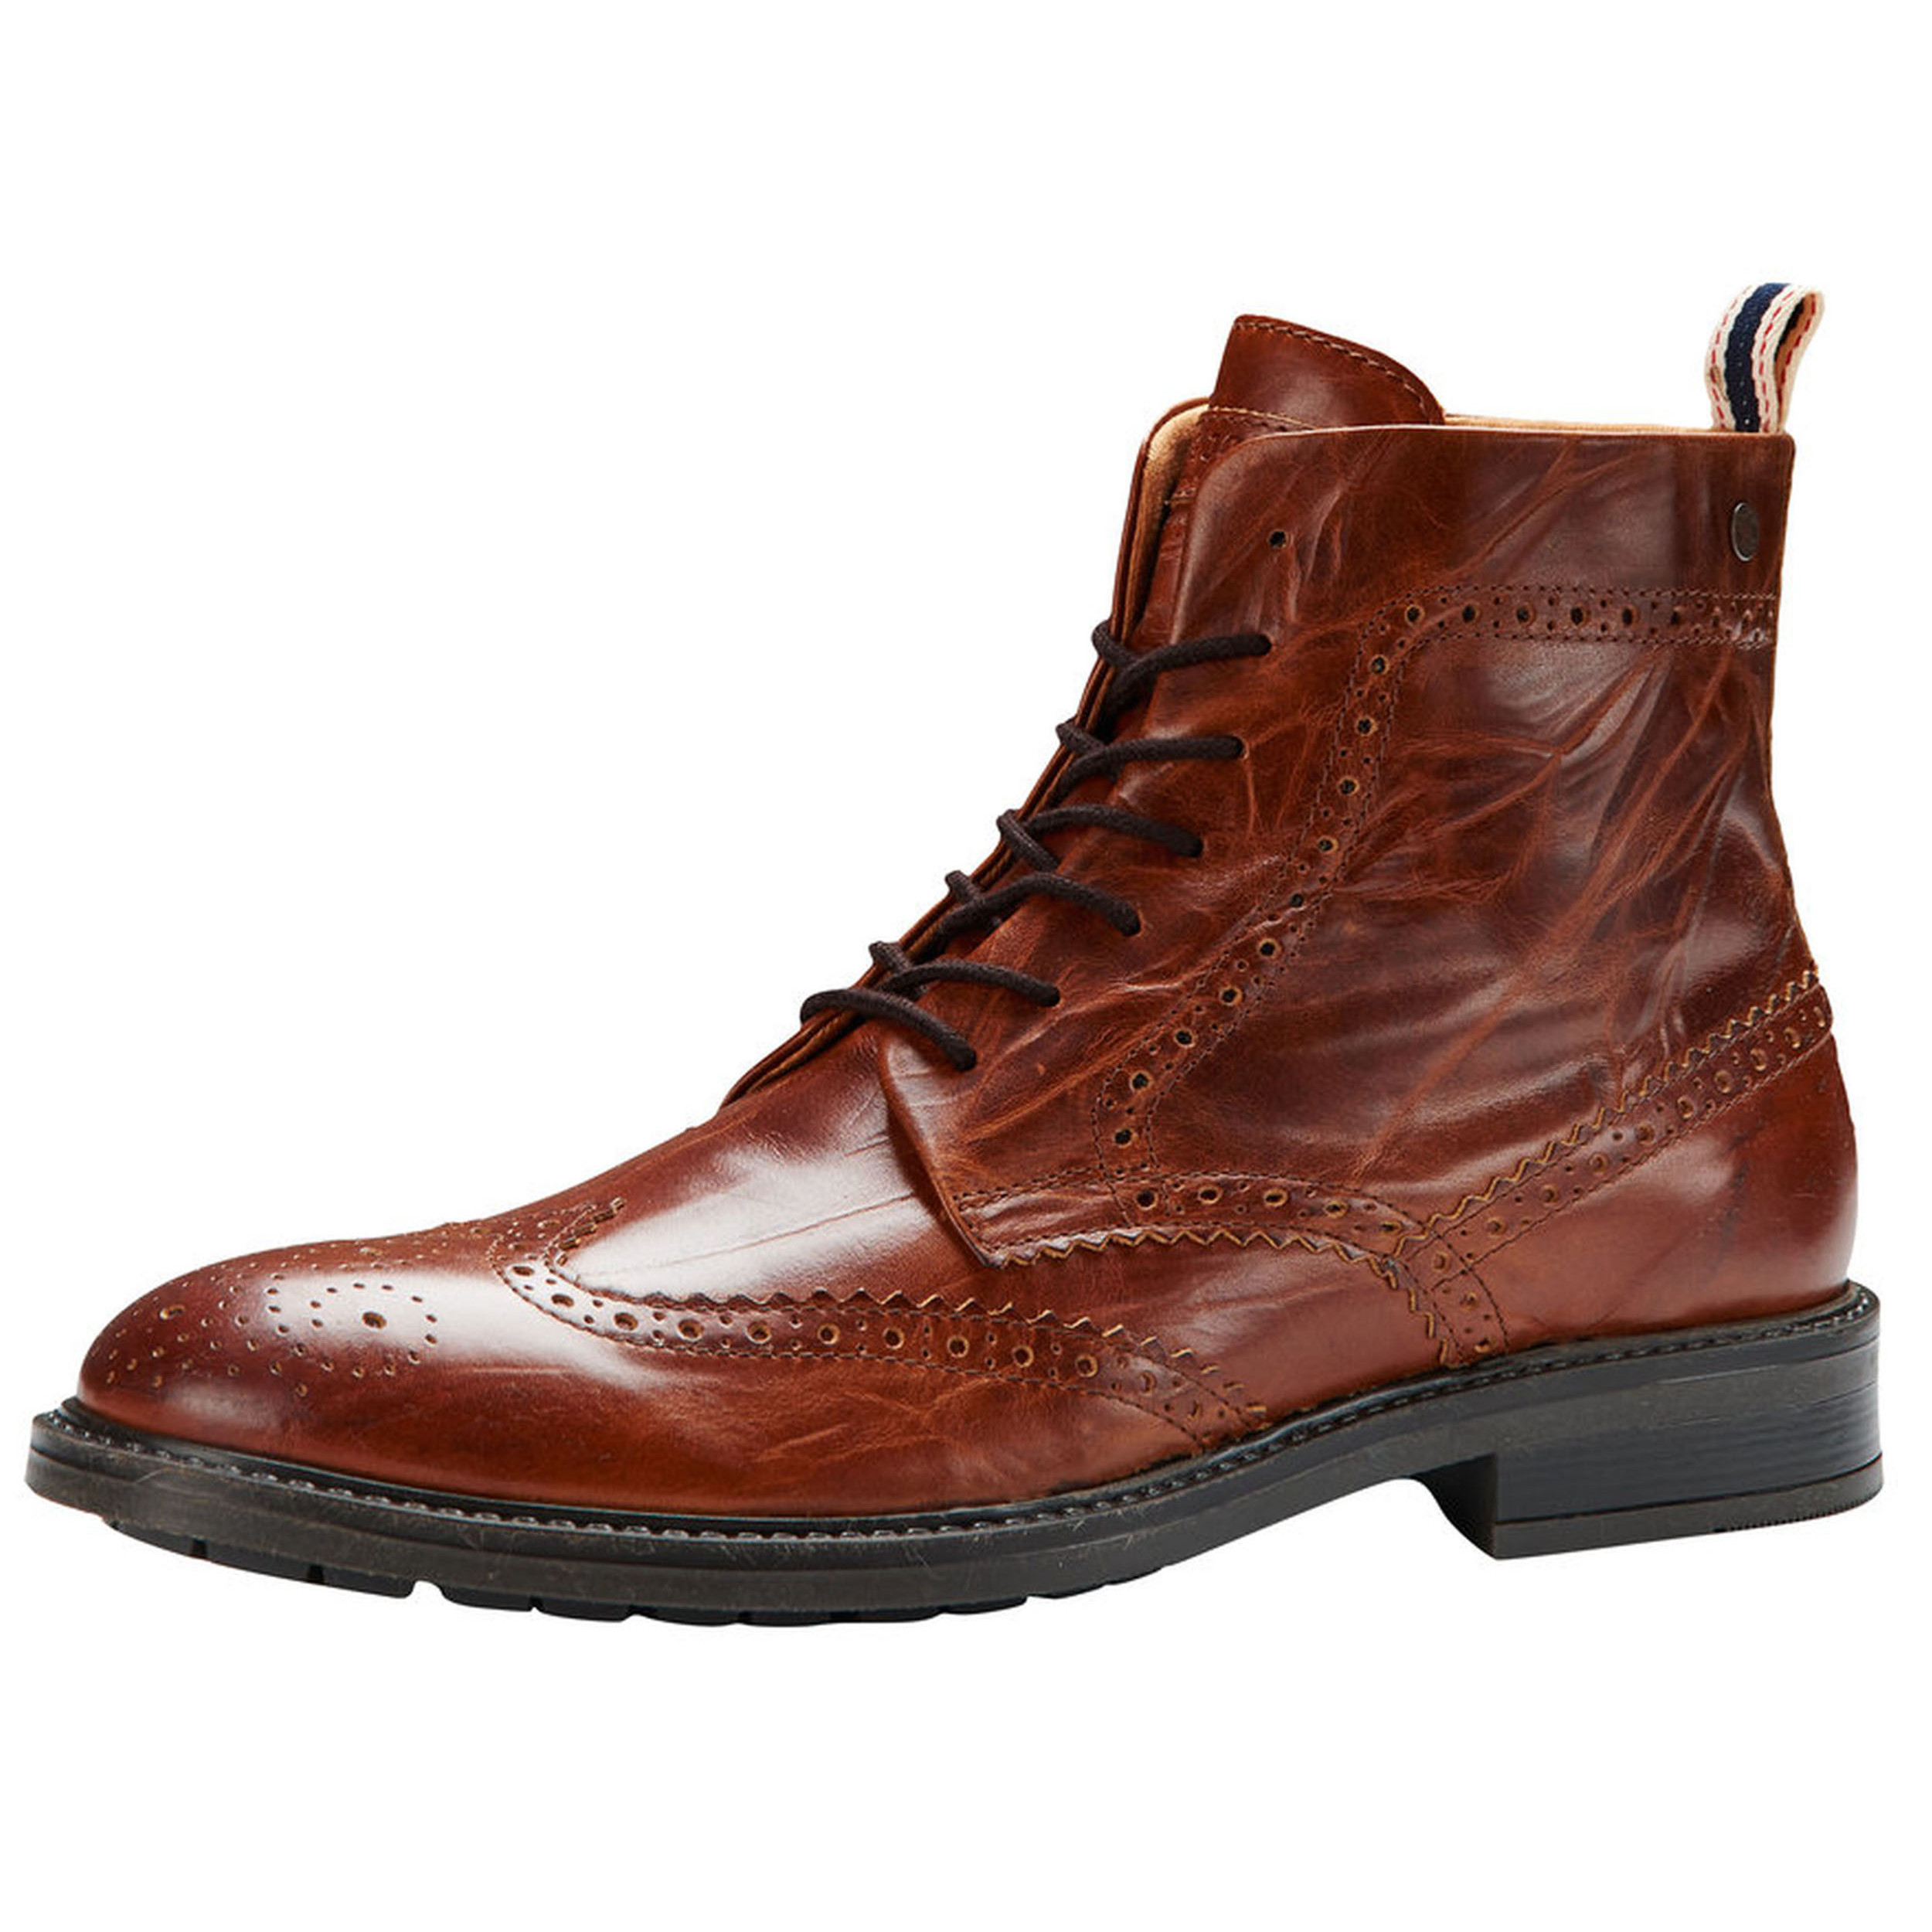 shopping online free shipping clearance comfortable Jack & Jones Brogue Leather Boots 2014 new for sale clearance outlet clearance store VKj4rsrK